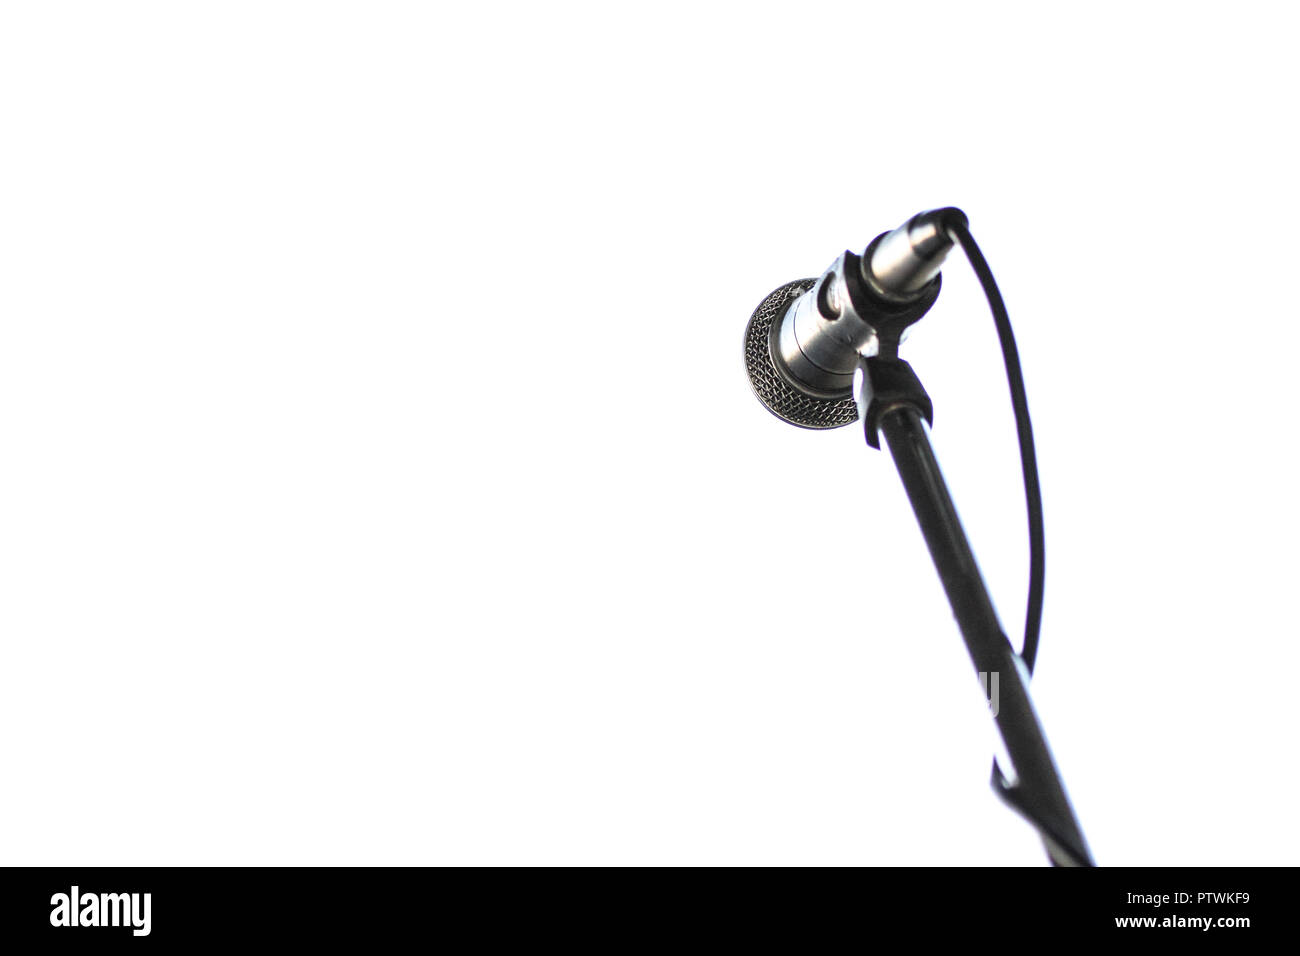 Close up of microphone and mic stand. - Stock Image